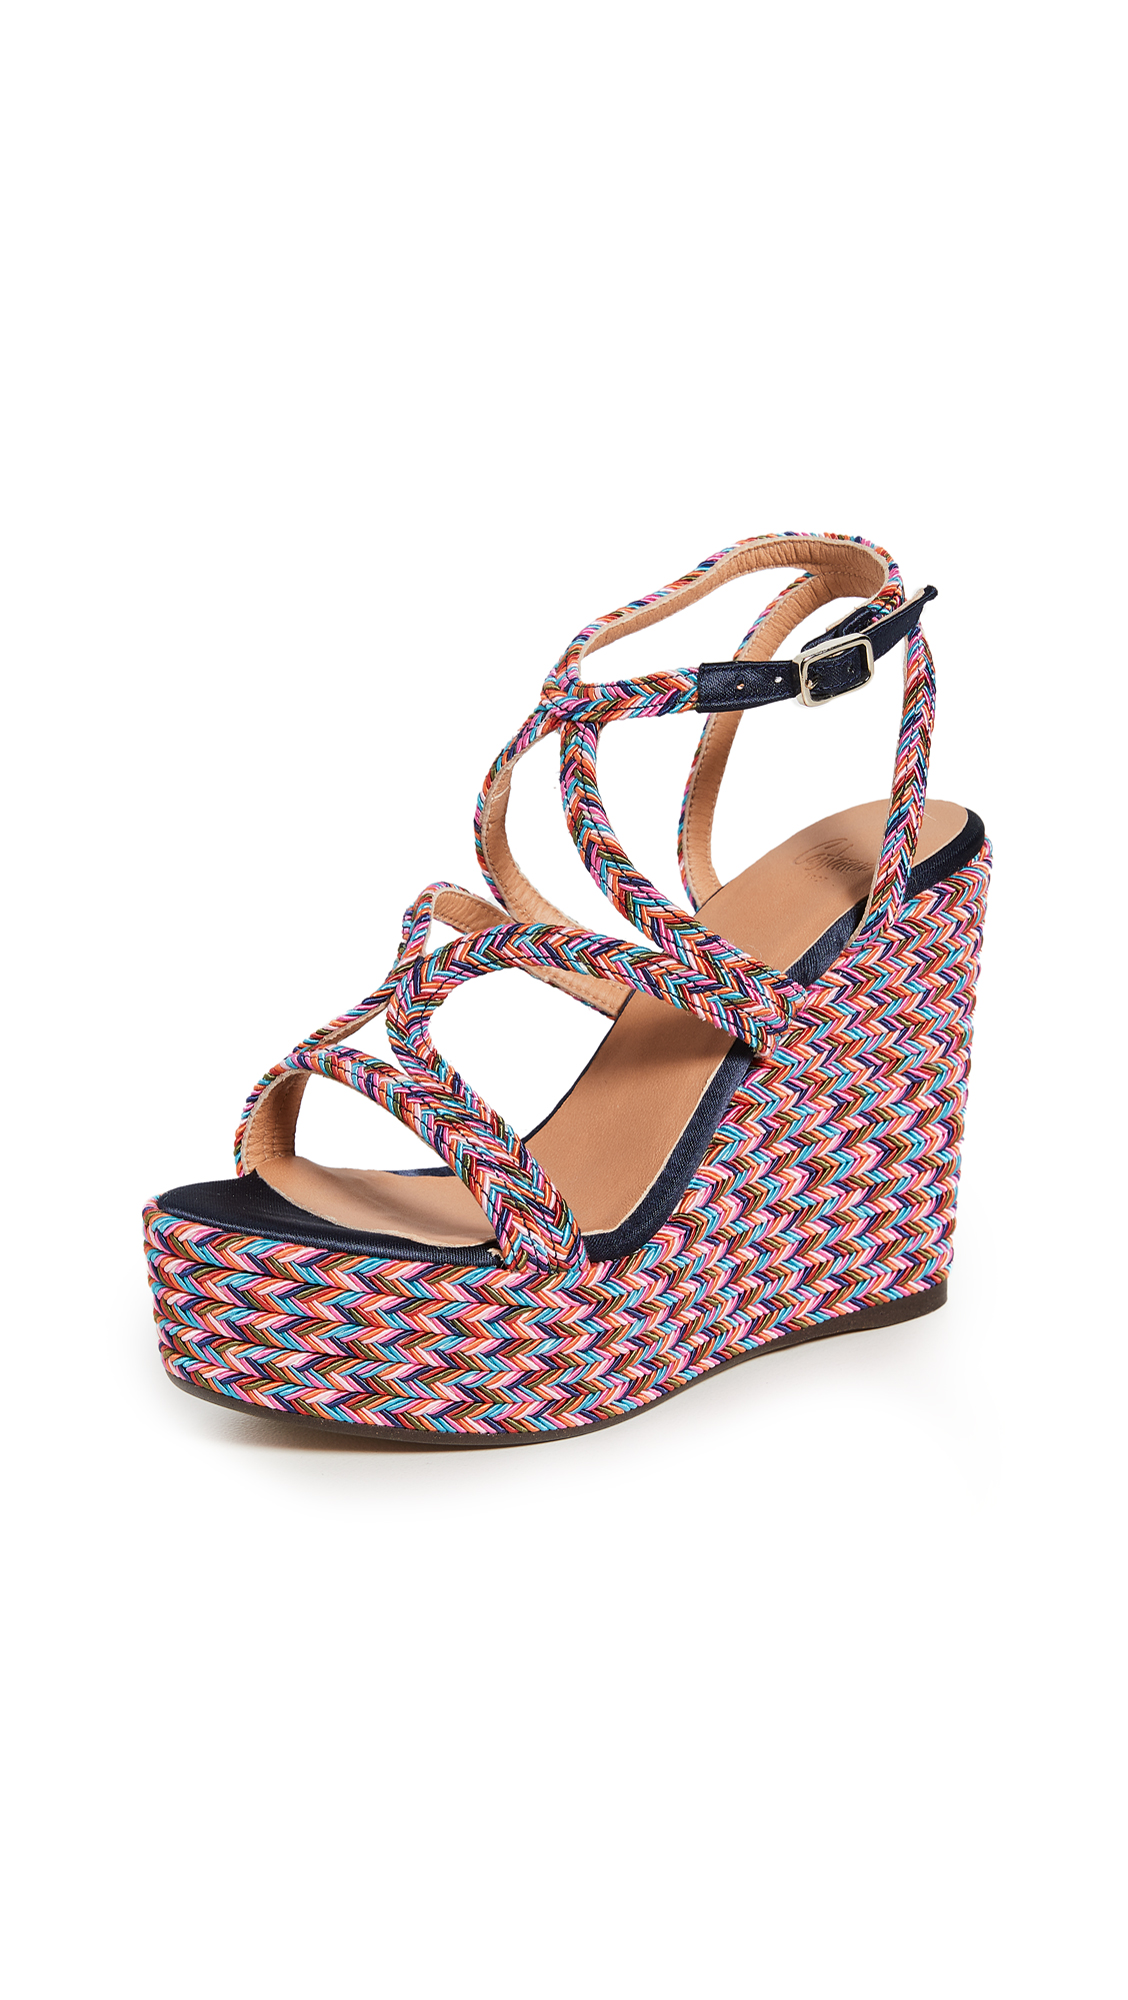 Buy Castaner Juli Wedge Sandals online, shop Castaner